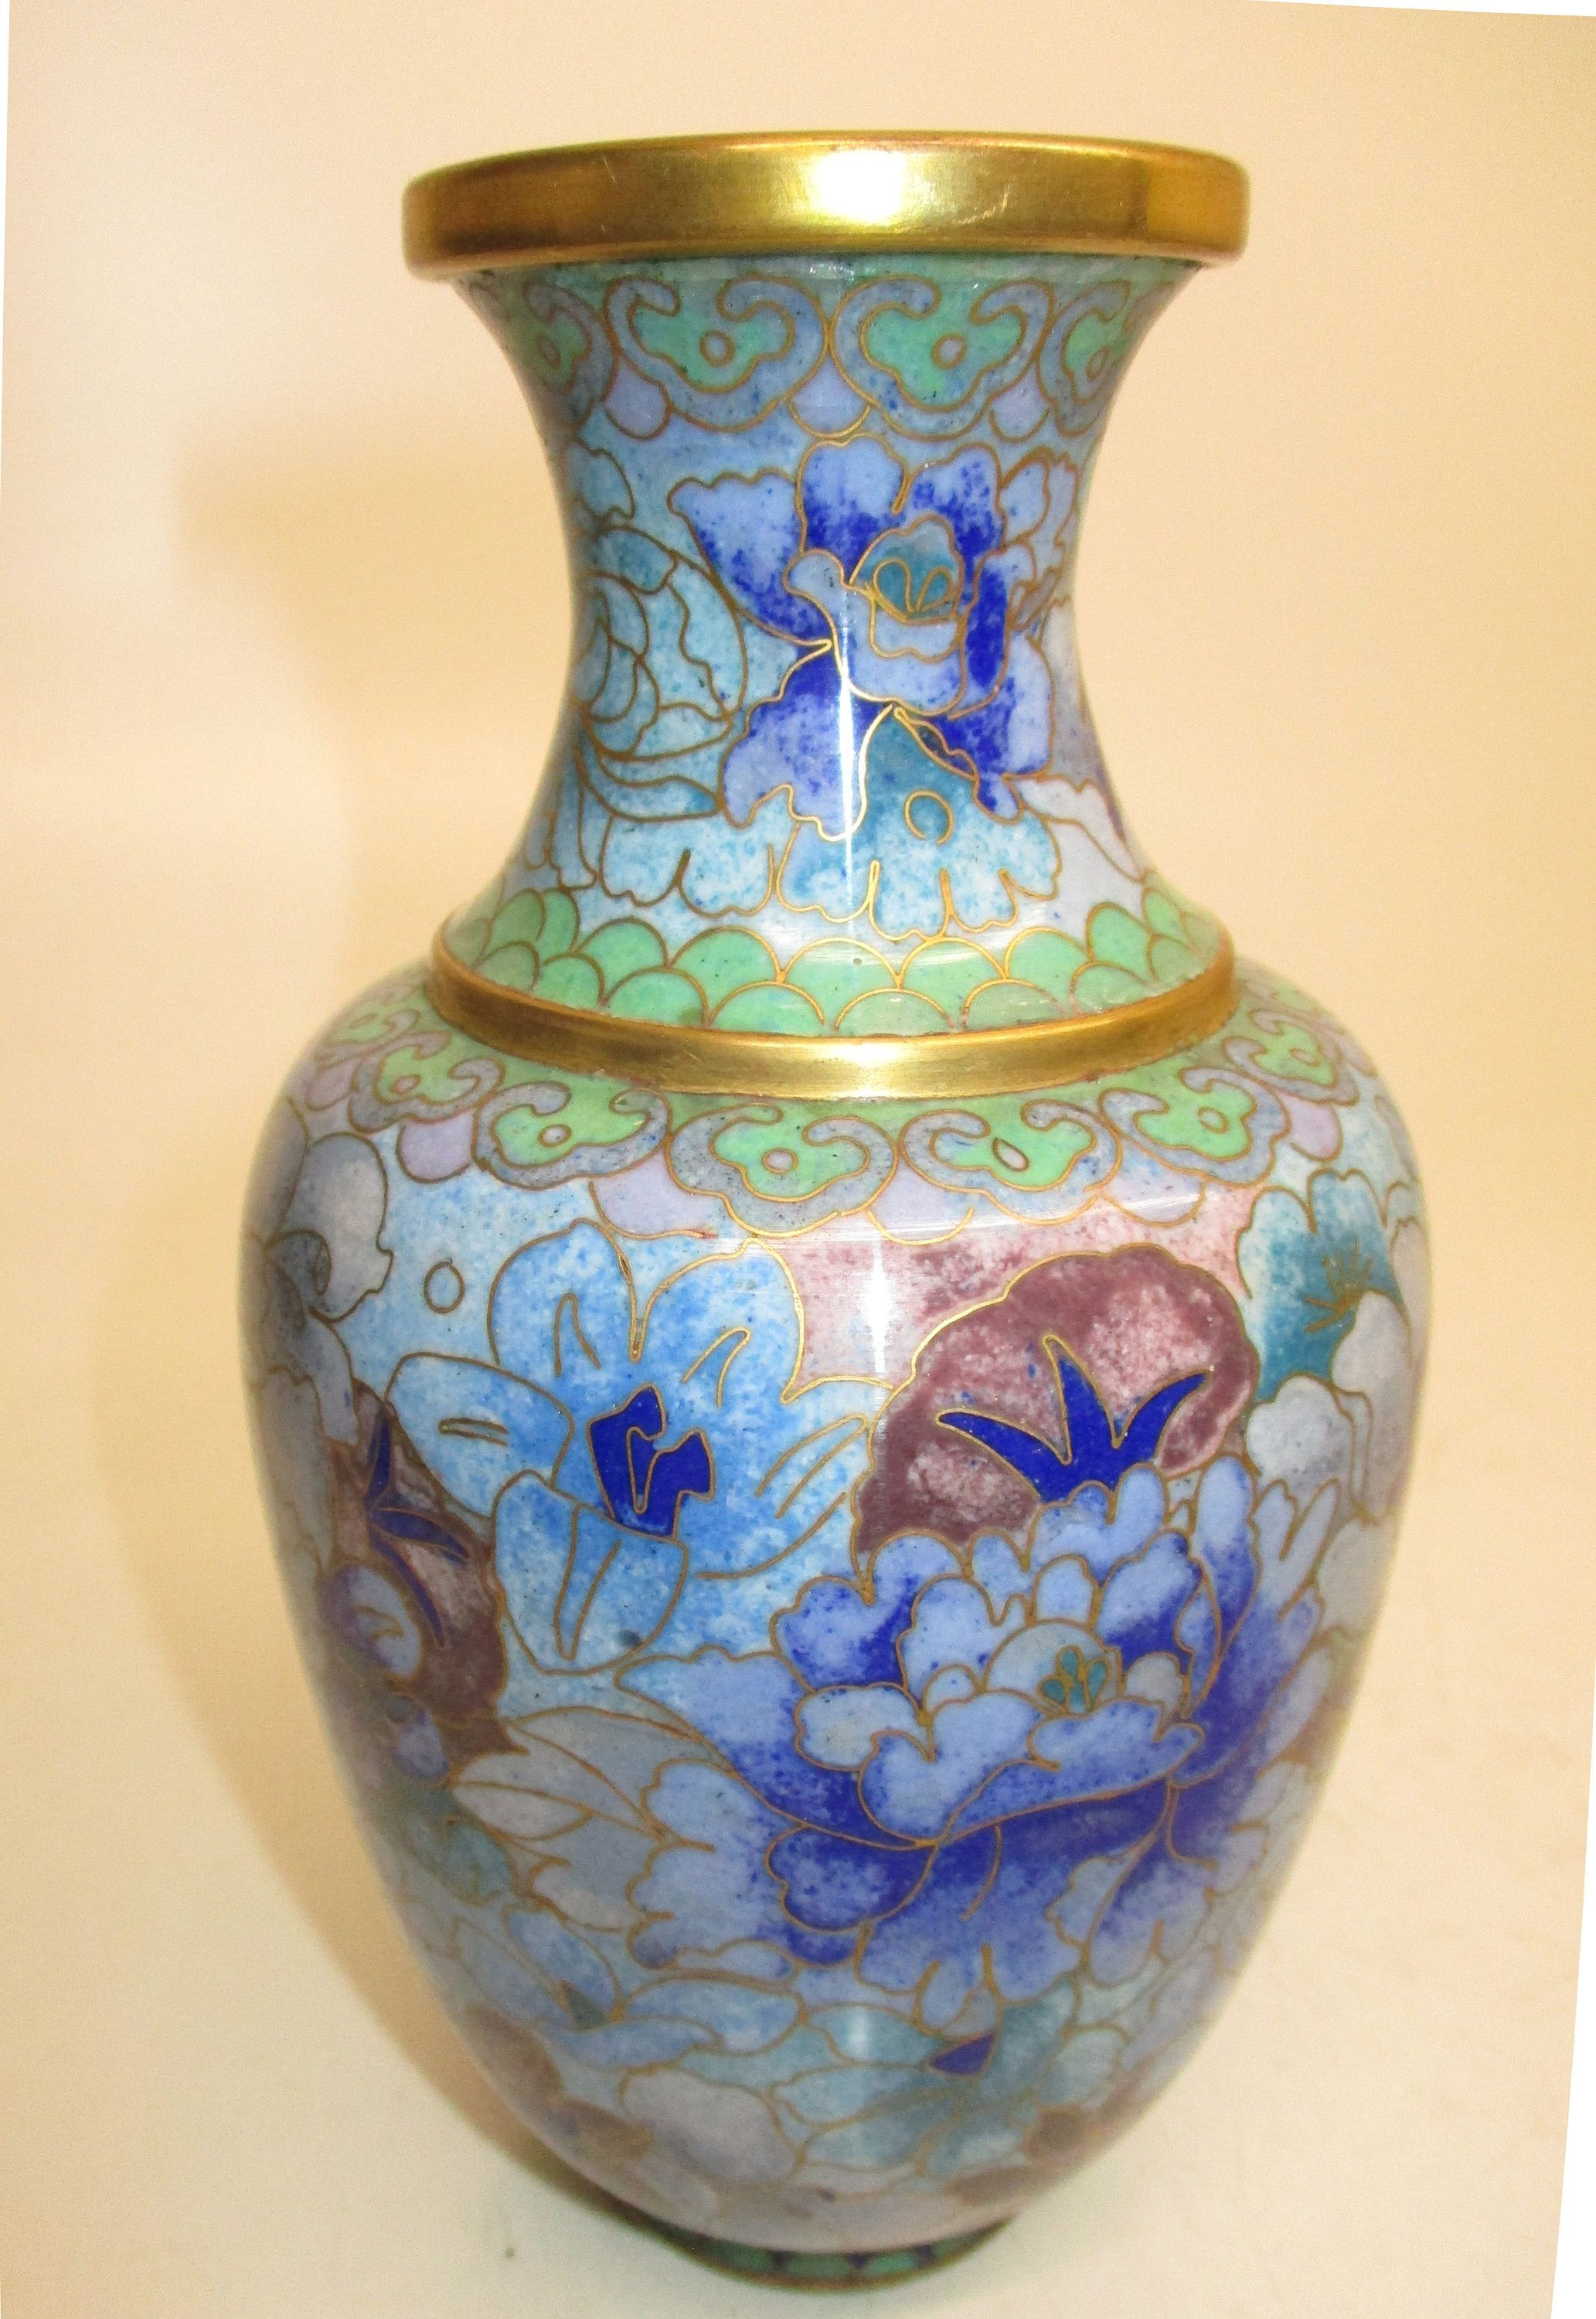 cloisonne vase value of excited to share the latest addition to my etsy shop 6 5 vintage pertaining to excited to share the latest addition to my etsy shop 6 5 vintage cloisonne